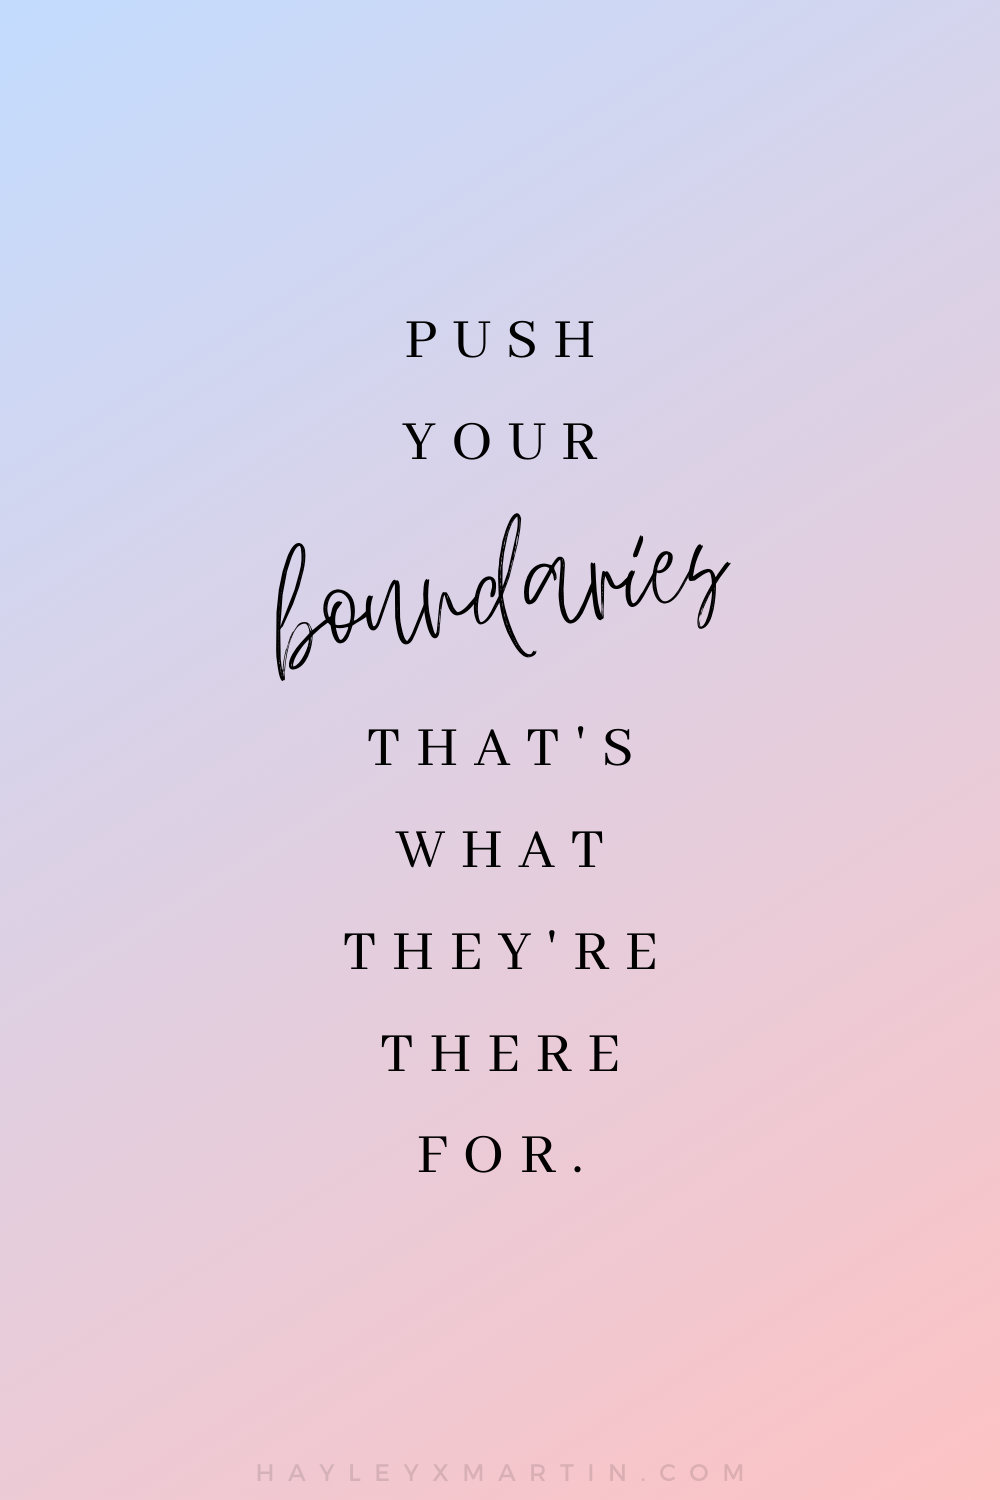 PUSH YOUR BOUNDARIES THAT'S WHAT THEY'RE THERE FOR | HAYLEYXMARTIN